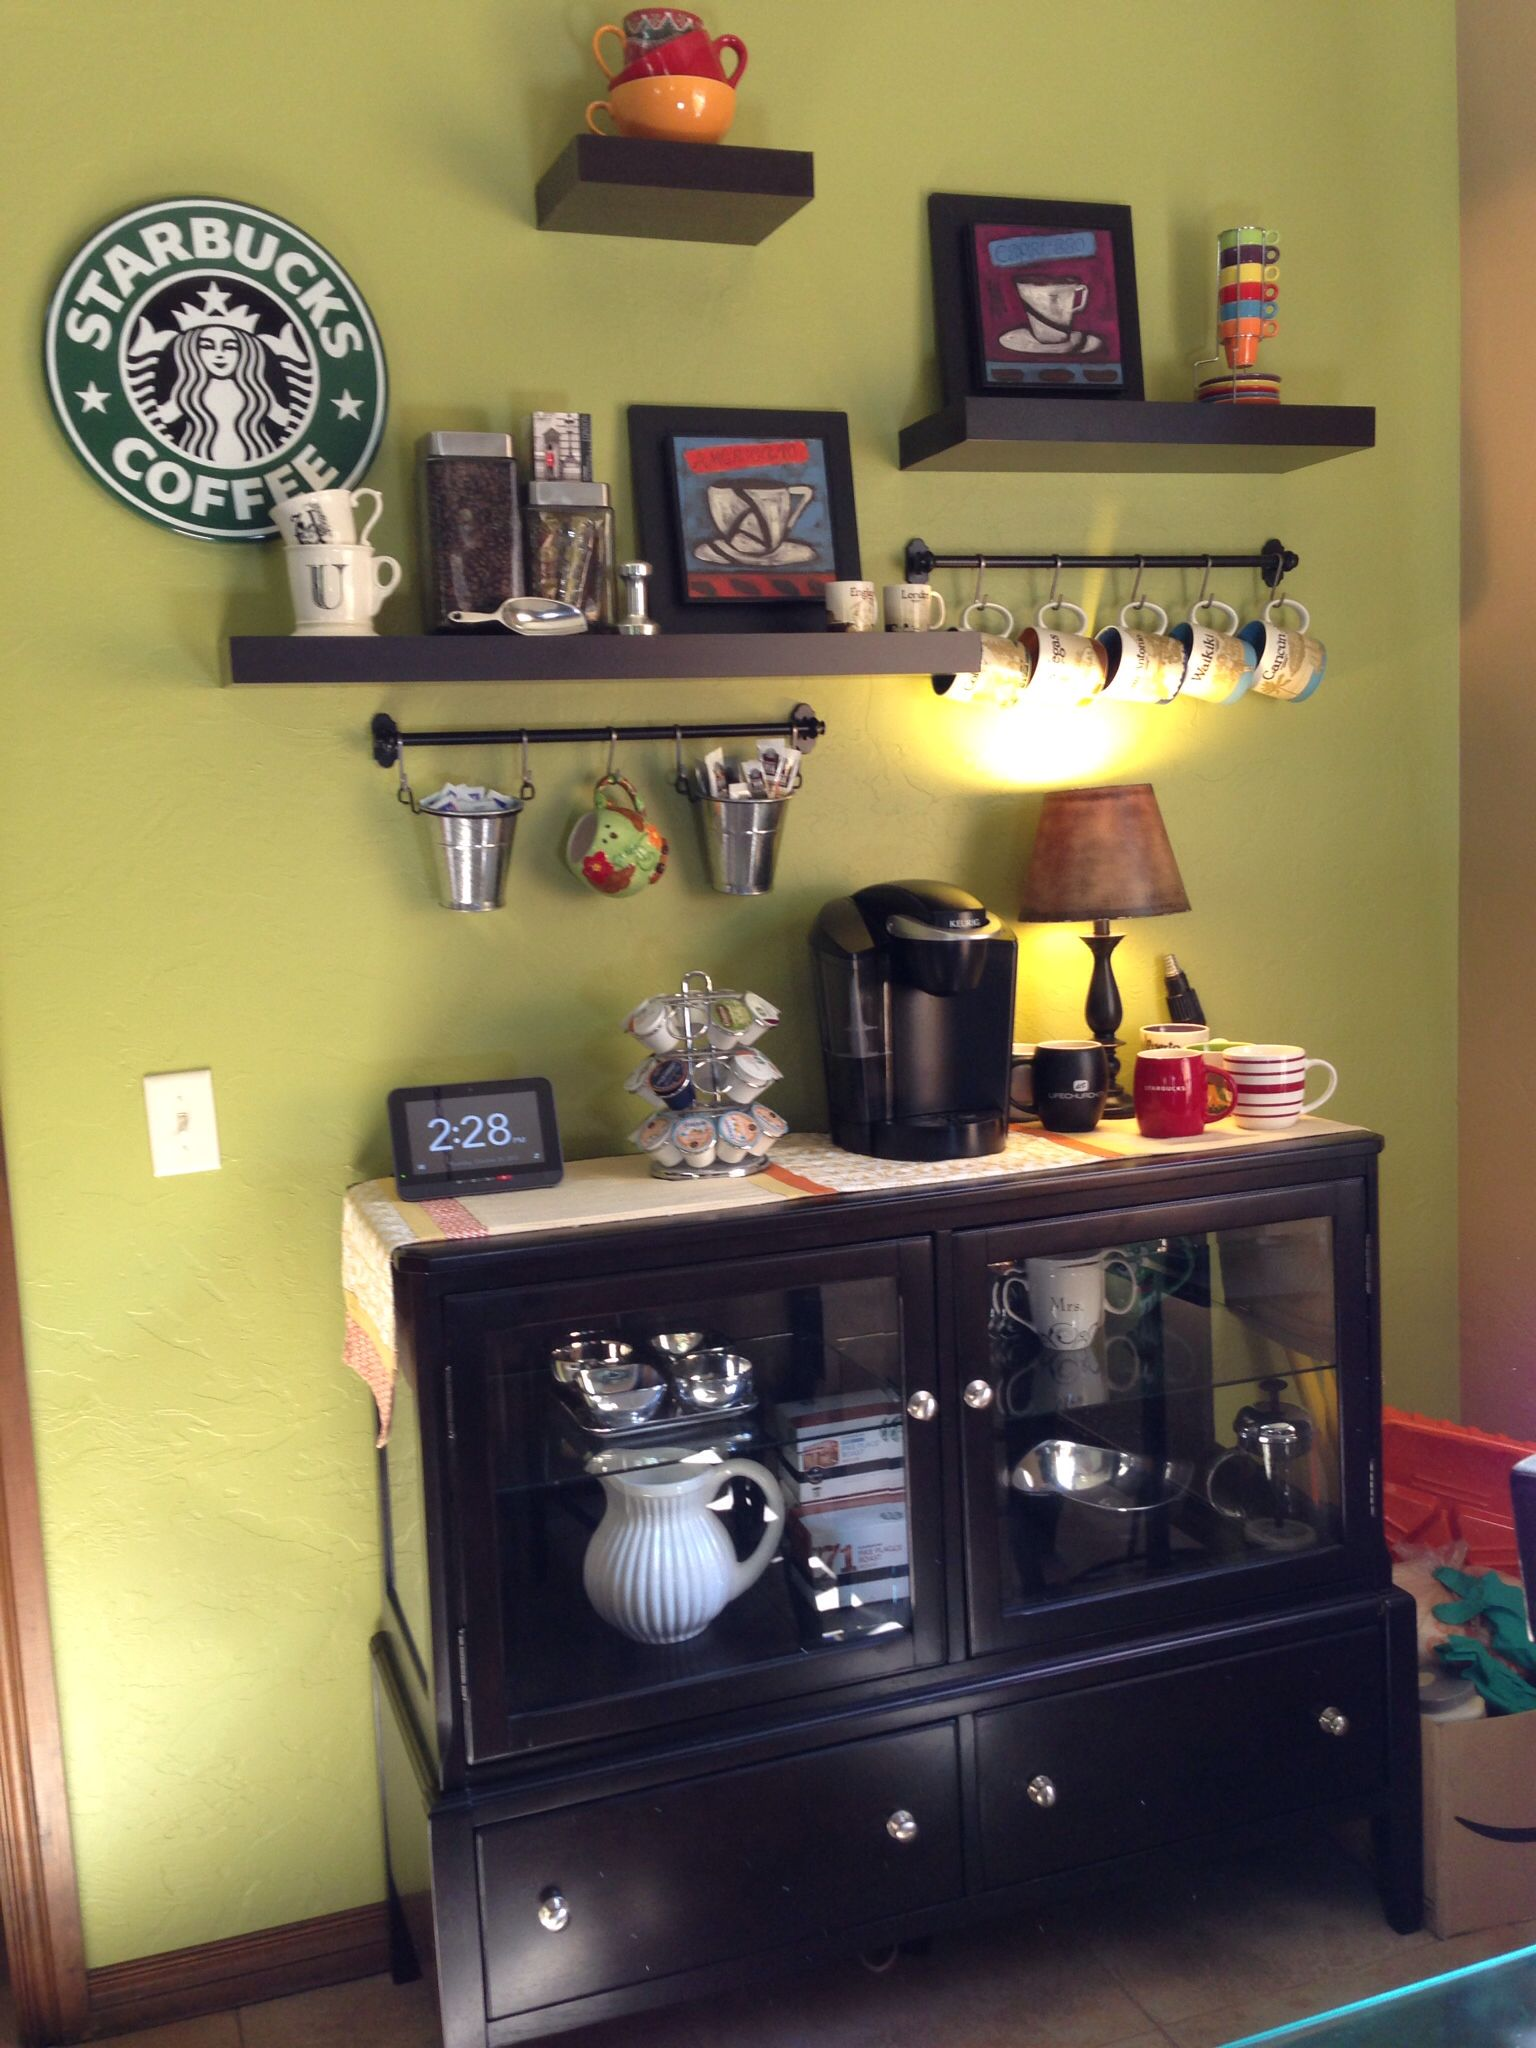 coffee bar furniture home. Coffee Bar.. HECK YES!!! This Is Def Going In Our New Bar Furniture Home